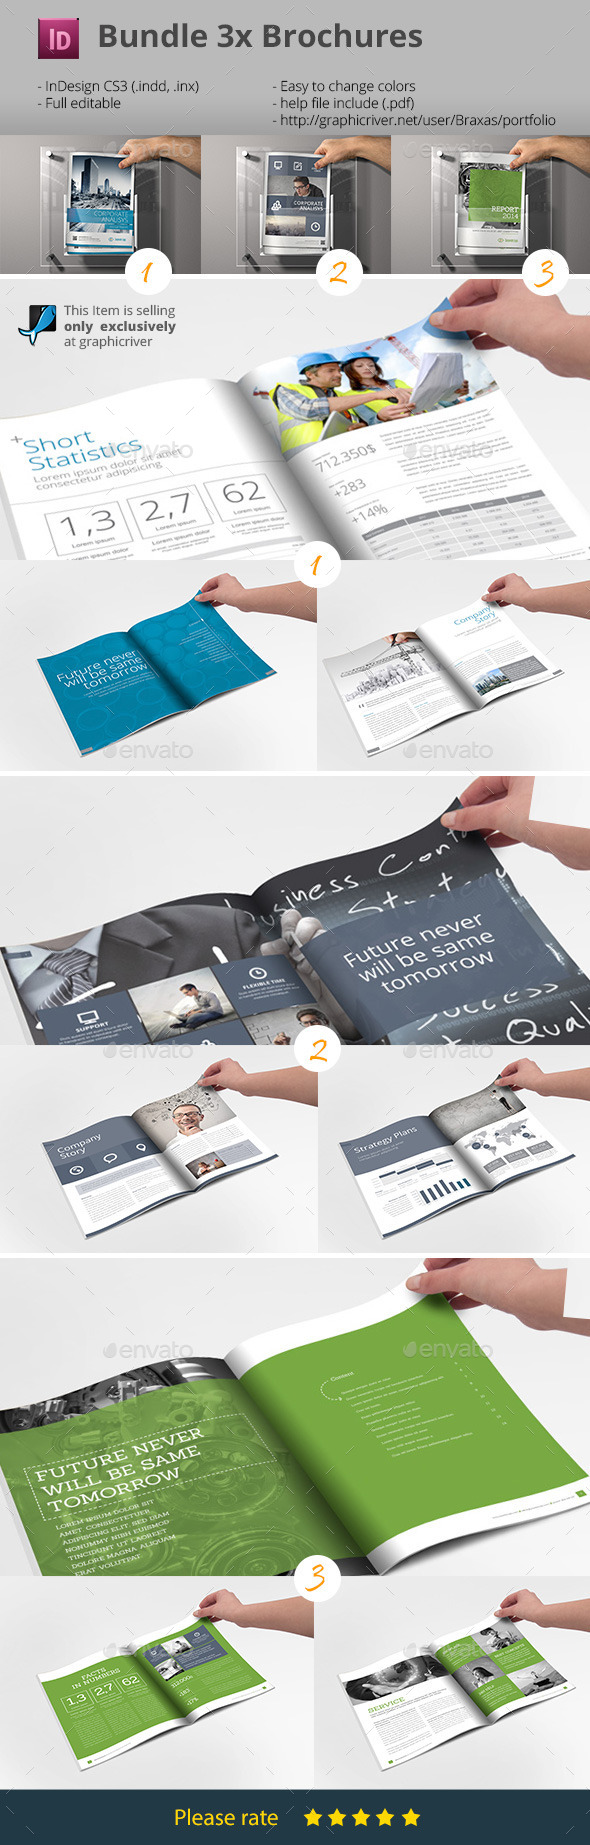 Business Brochure Bundle InDesign Templates